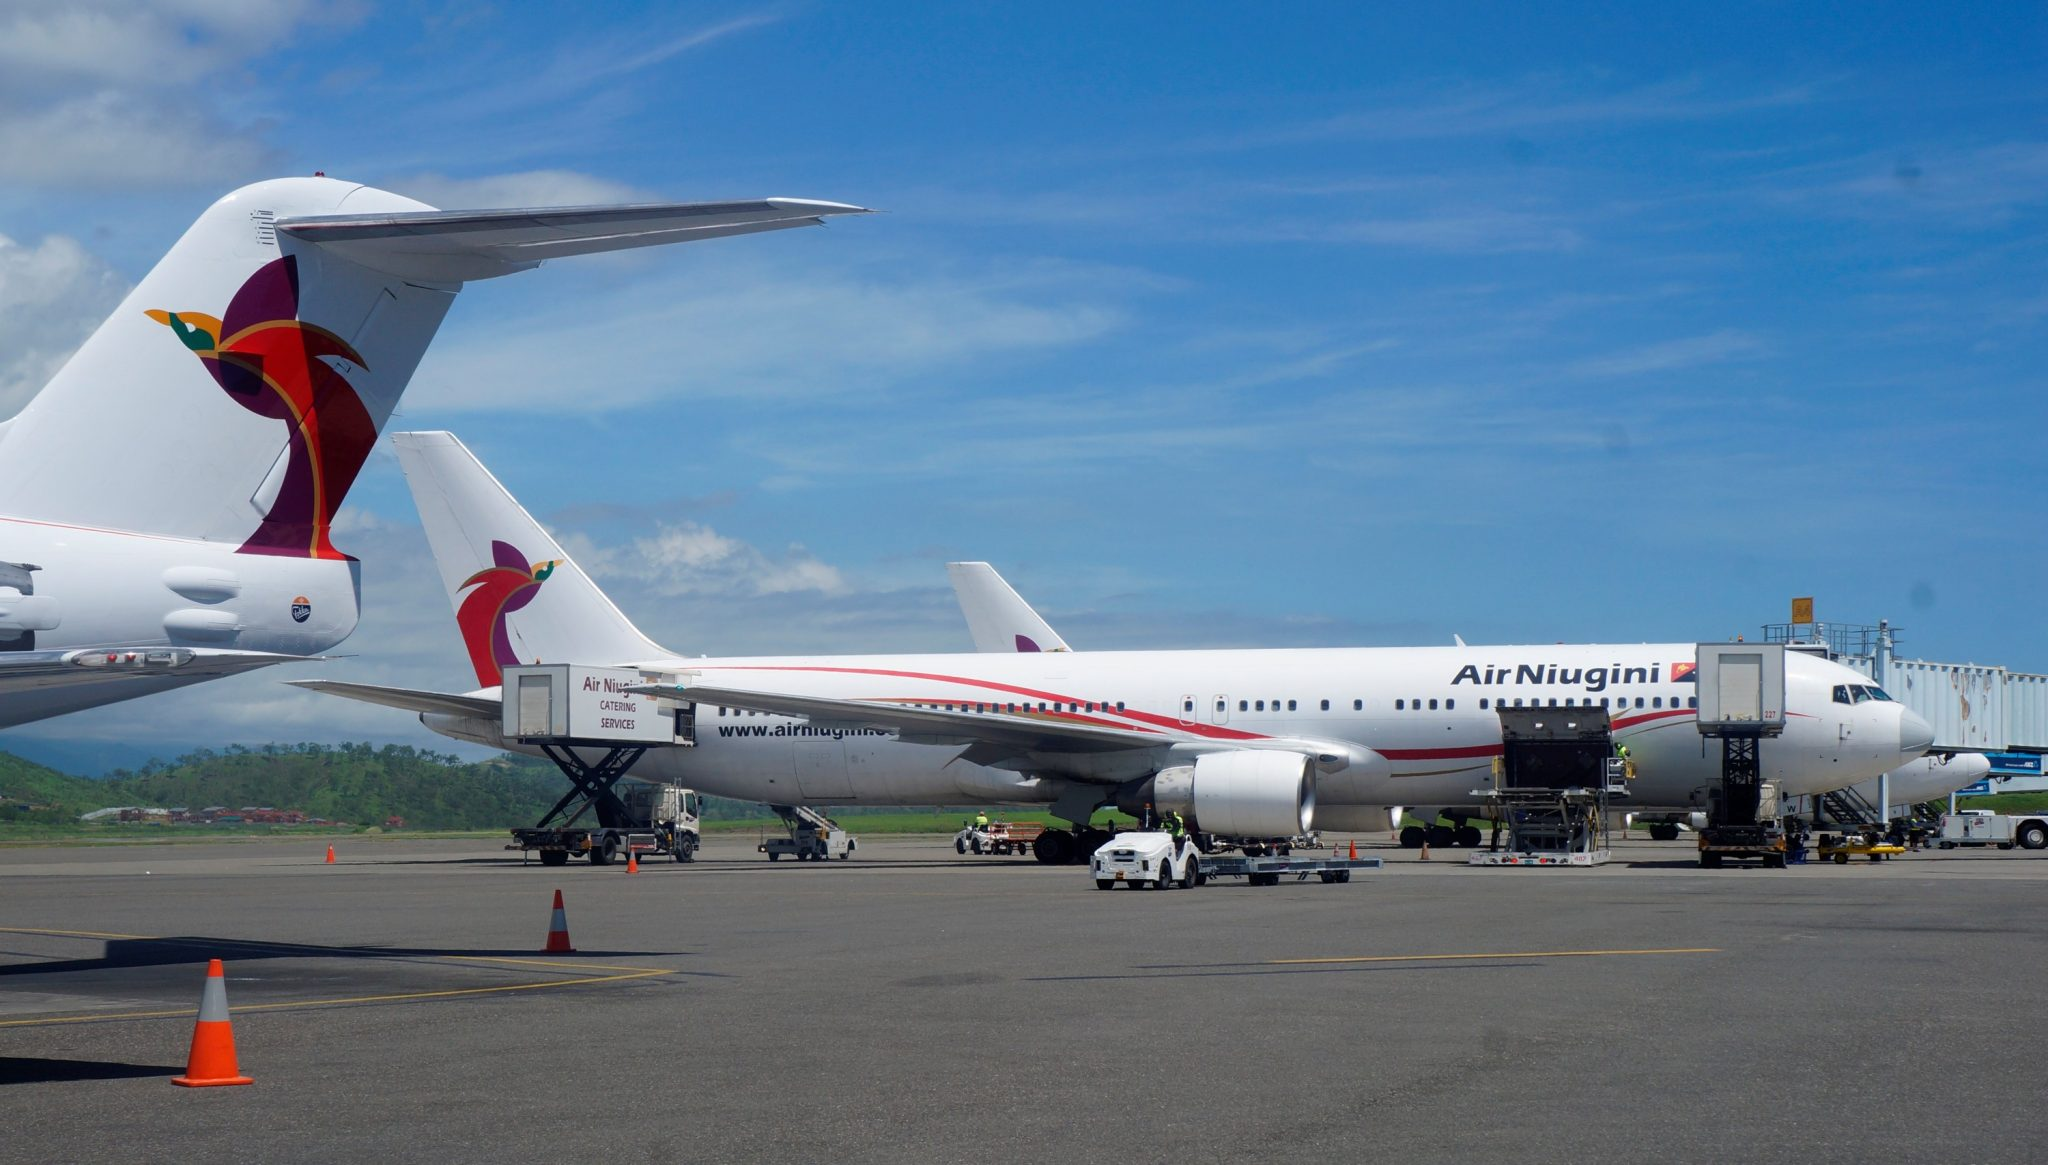 Temporary cancellation of Air Niugini services to Denpasar, Bali